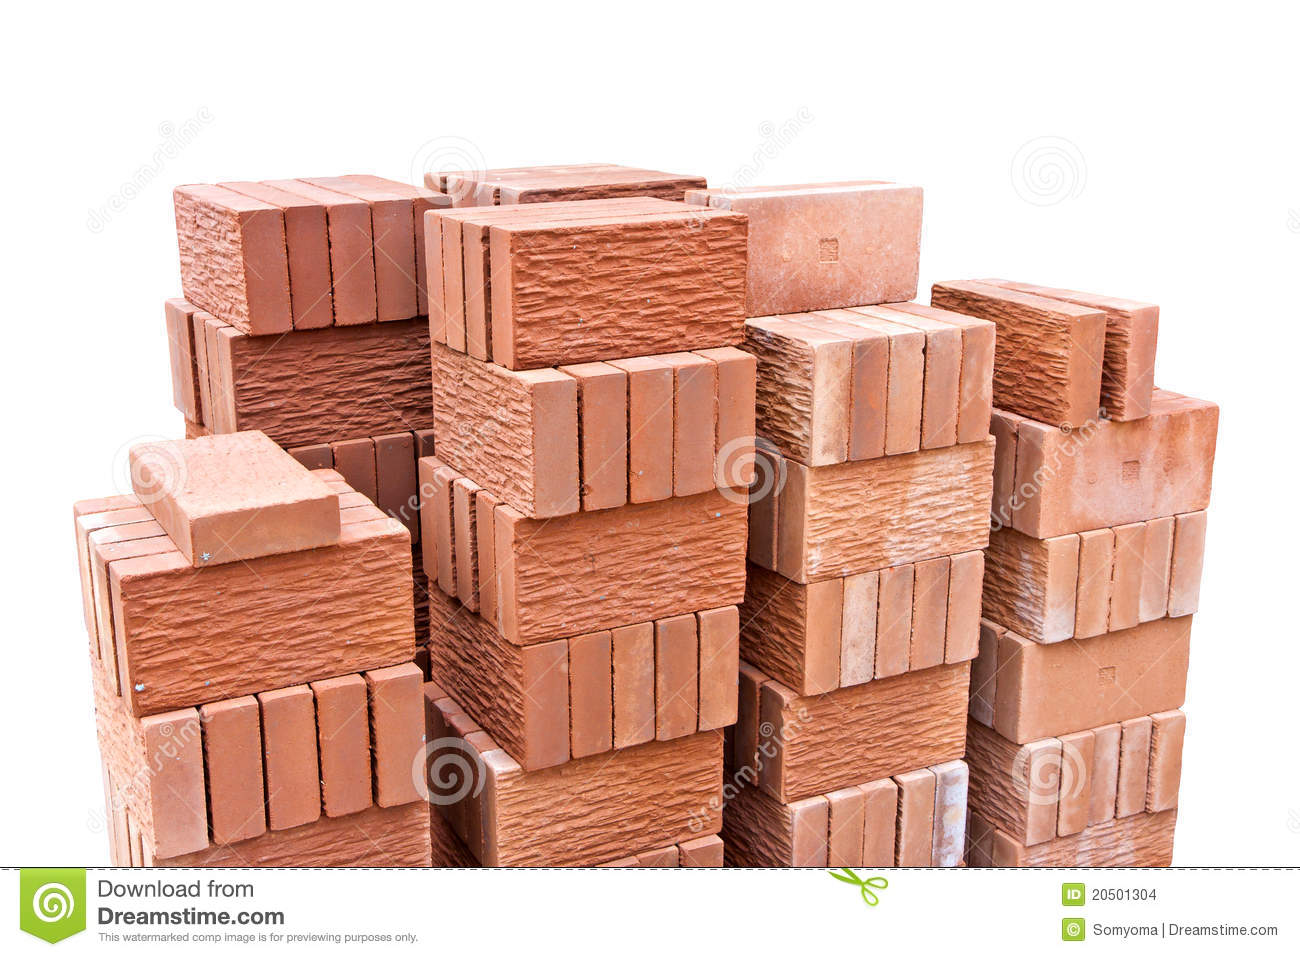 Decorative red clay brick